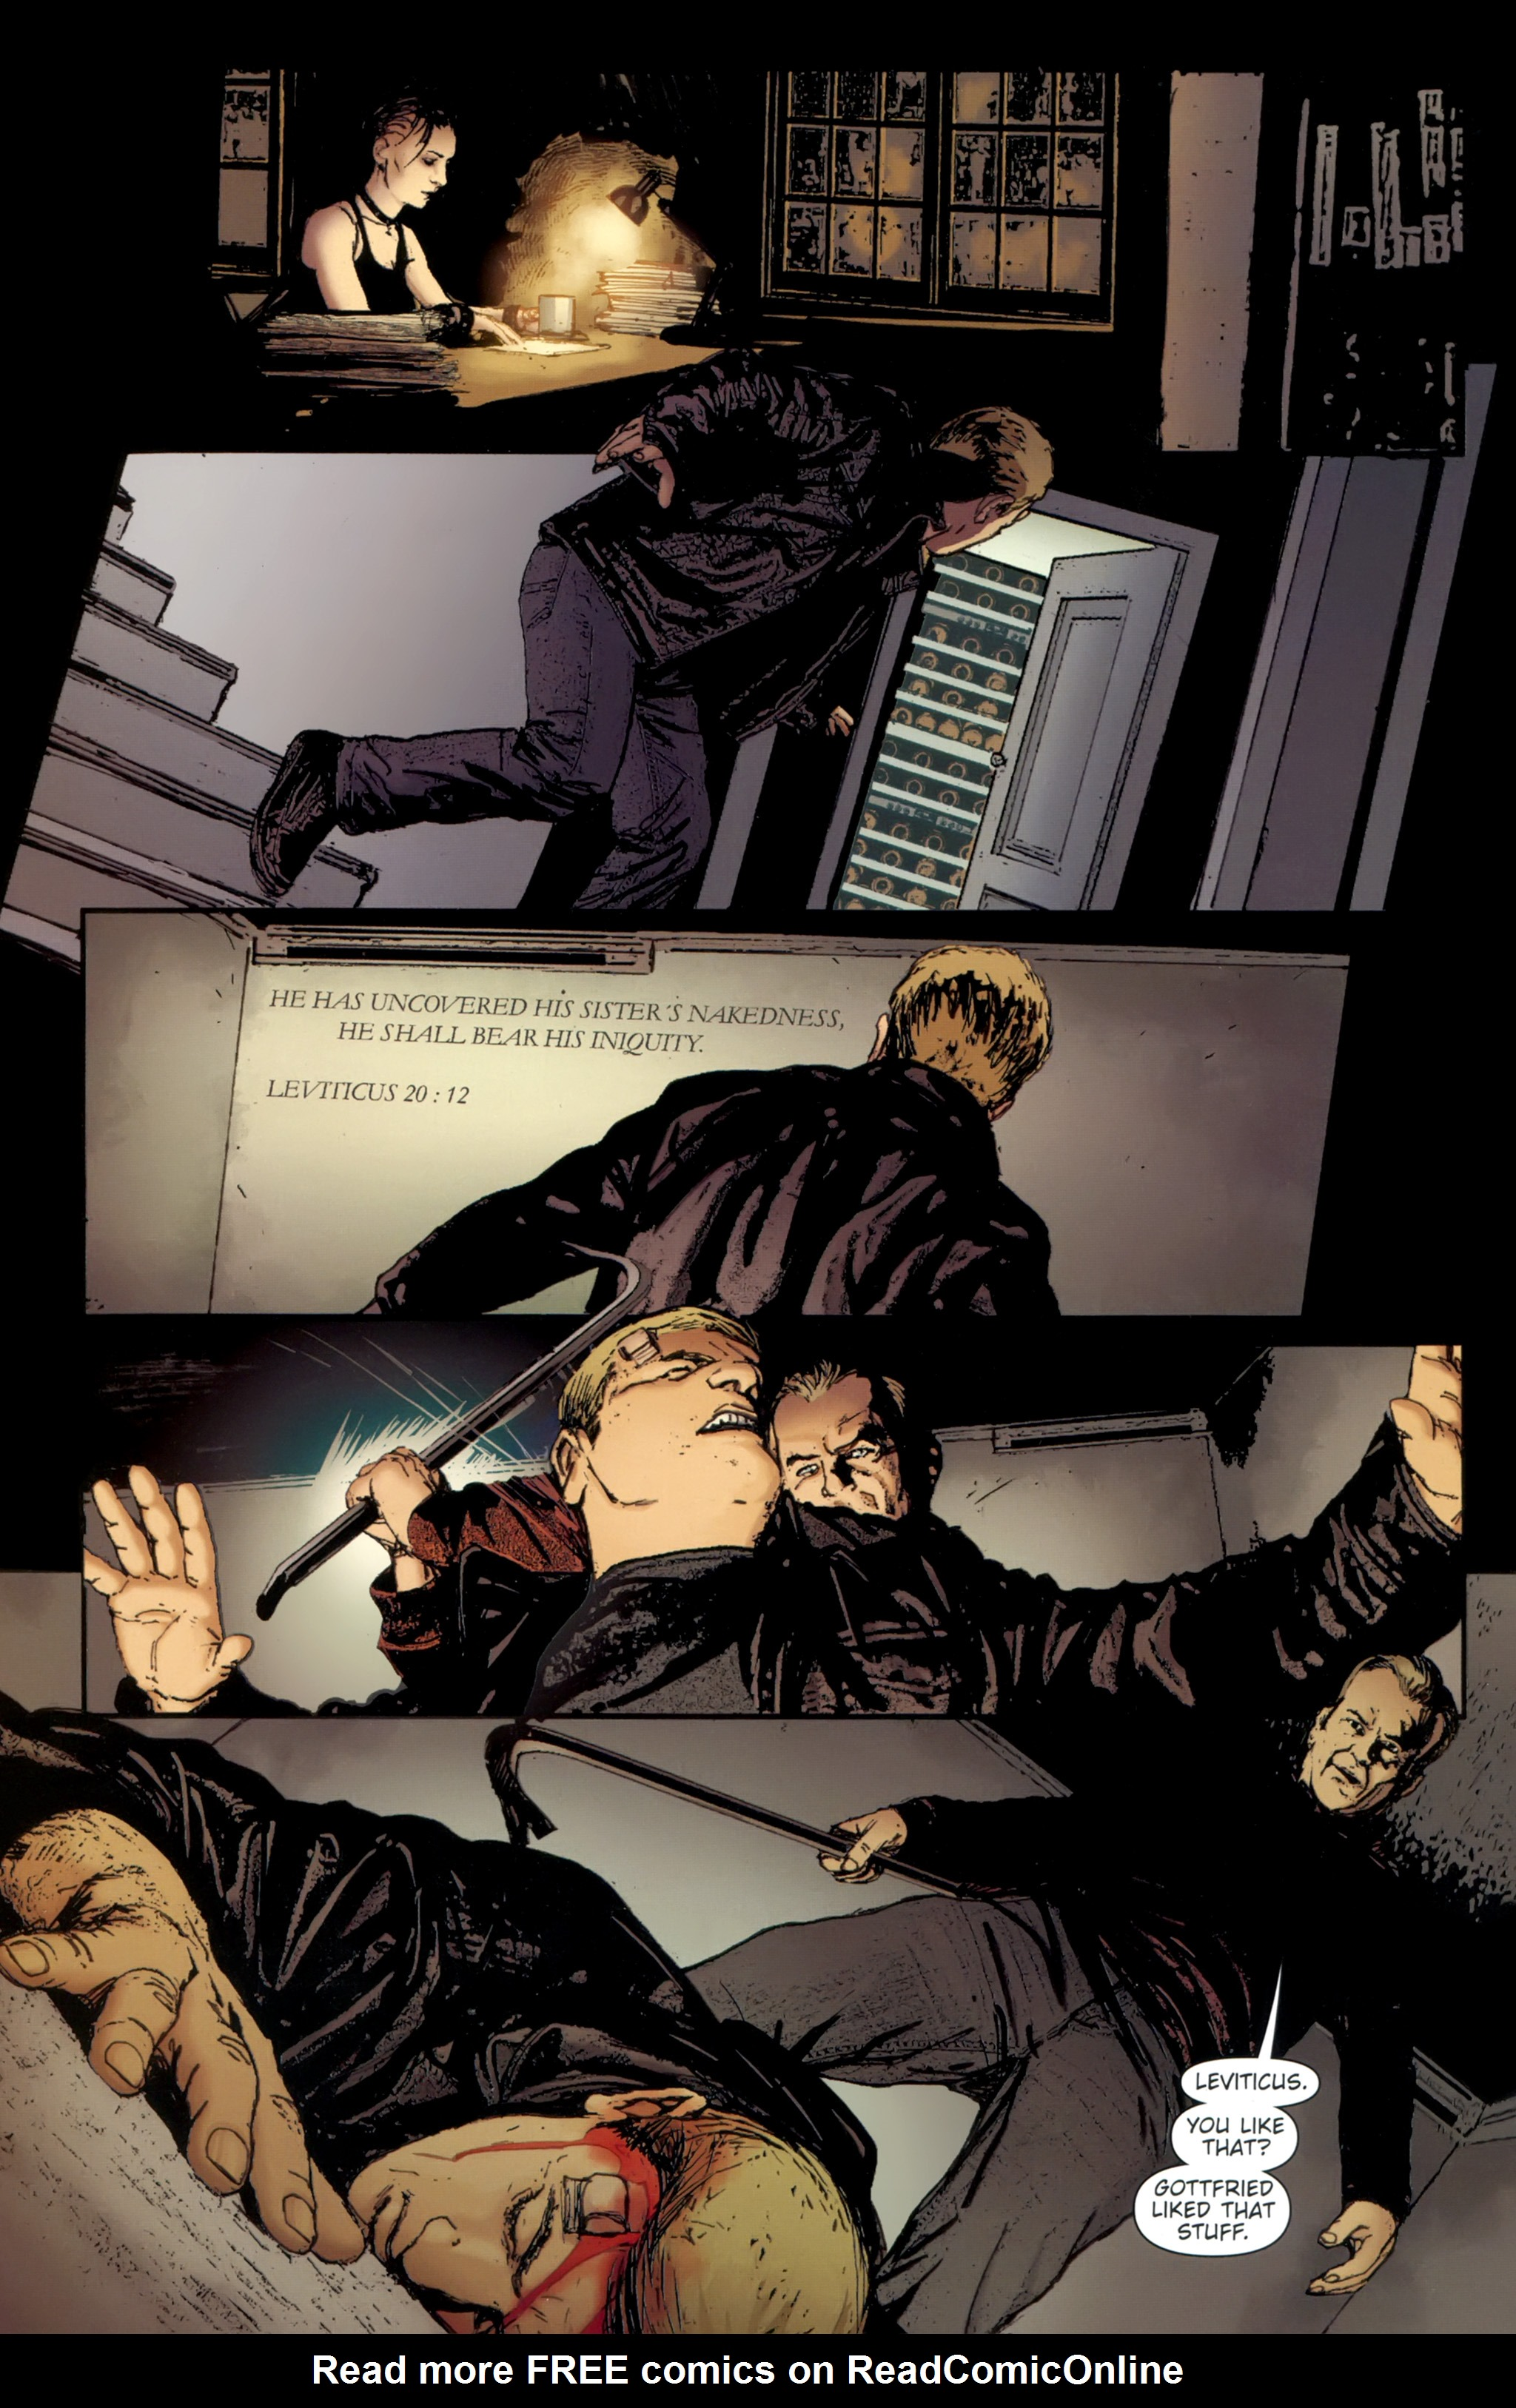 Read online The Girl With the Dragon Tattoo comic -  Issue # TPB 2 - 82